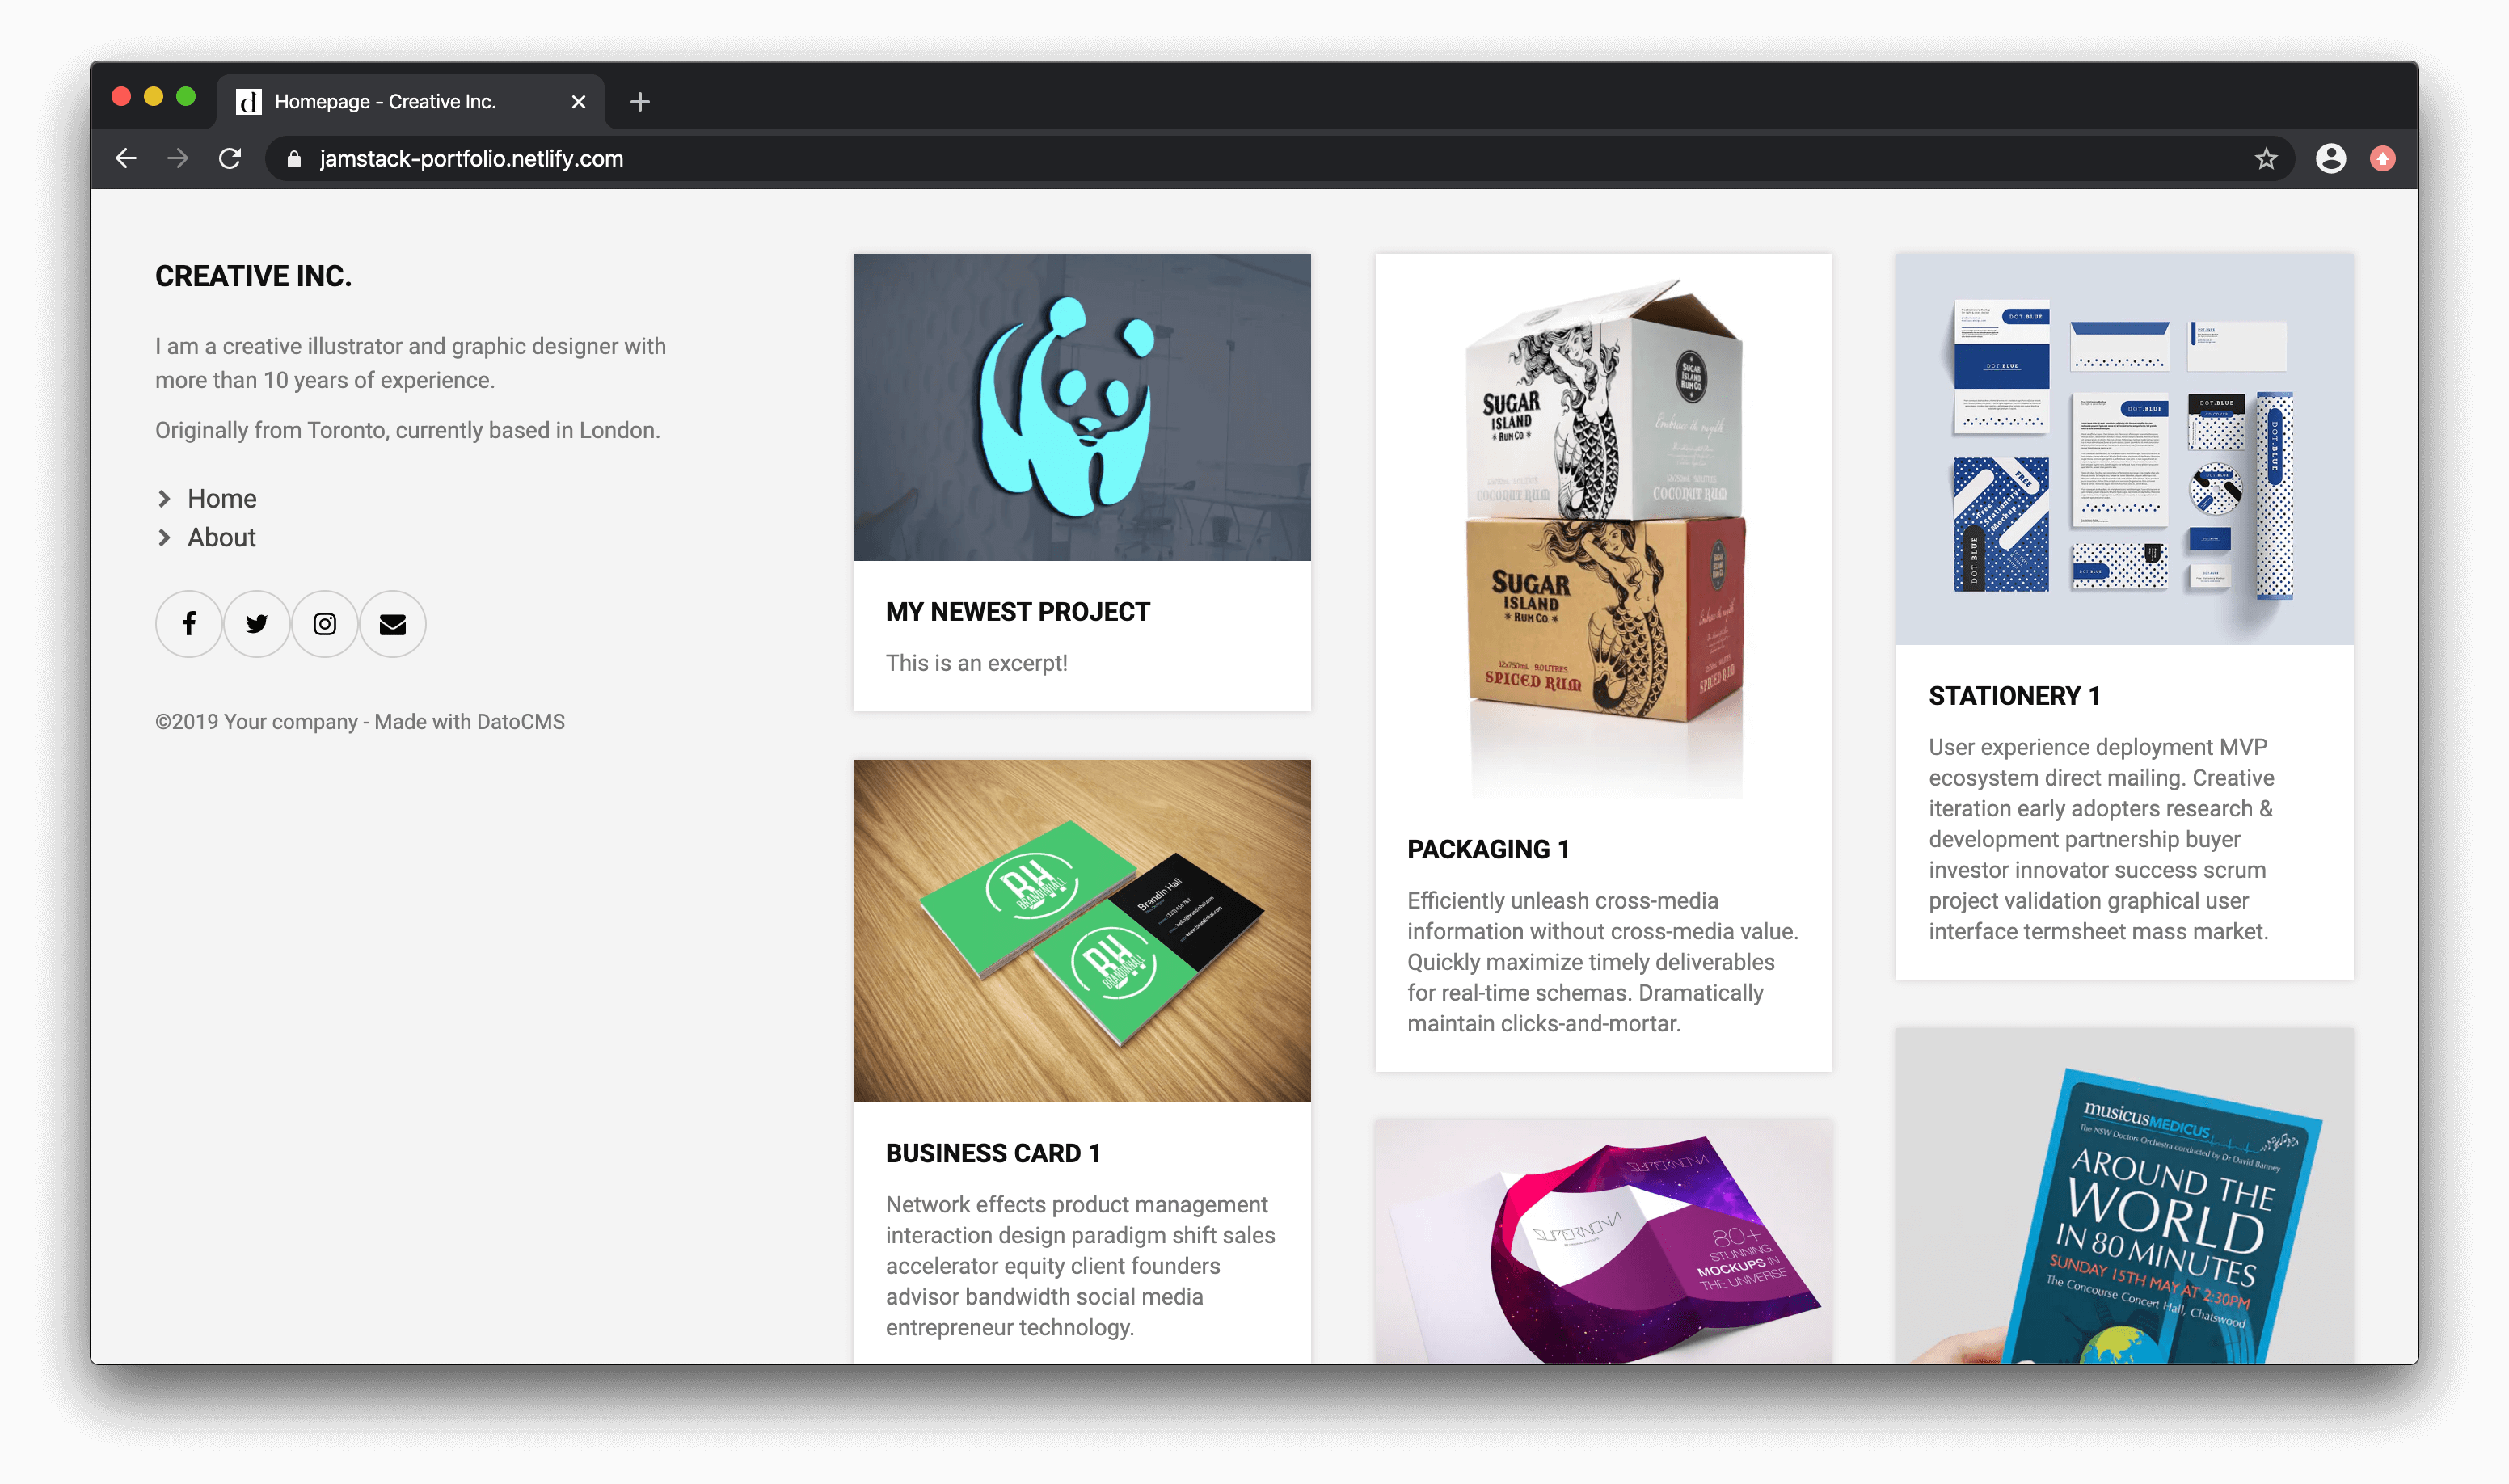 Final view of the deployed website homepage